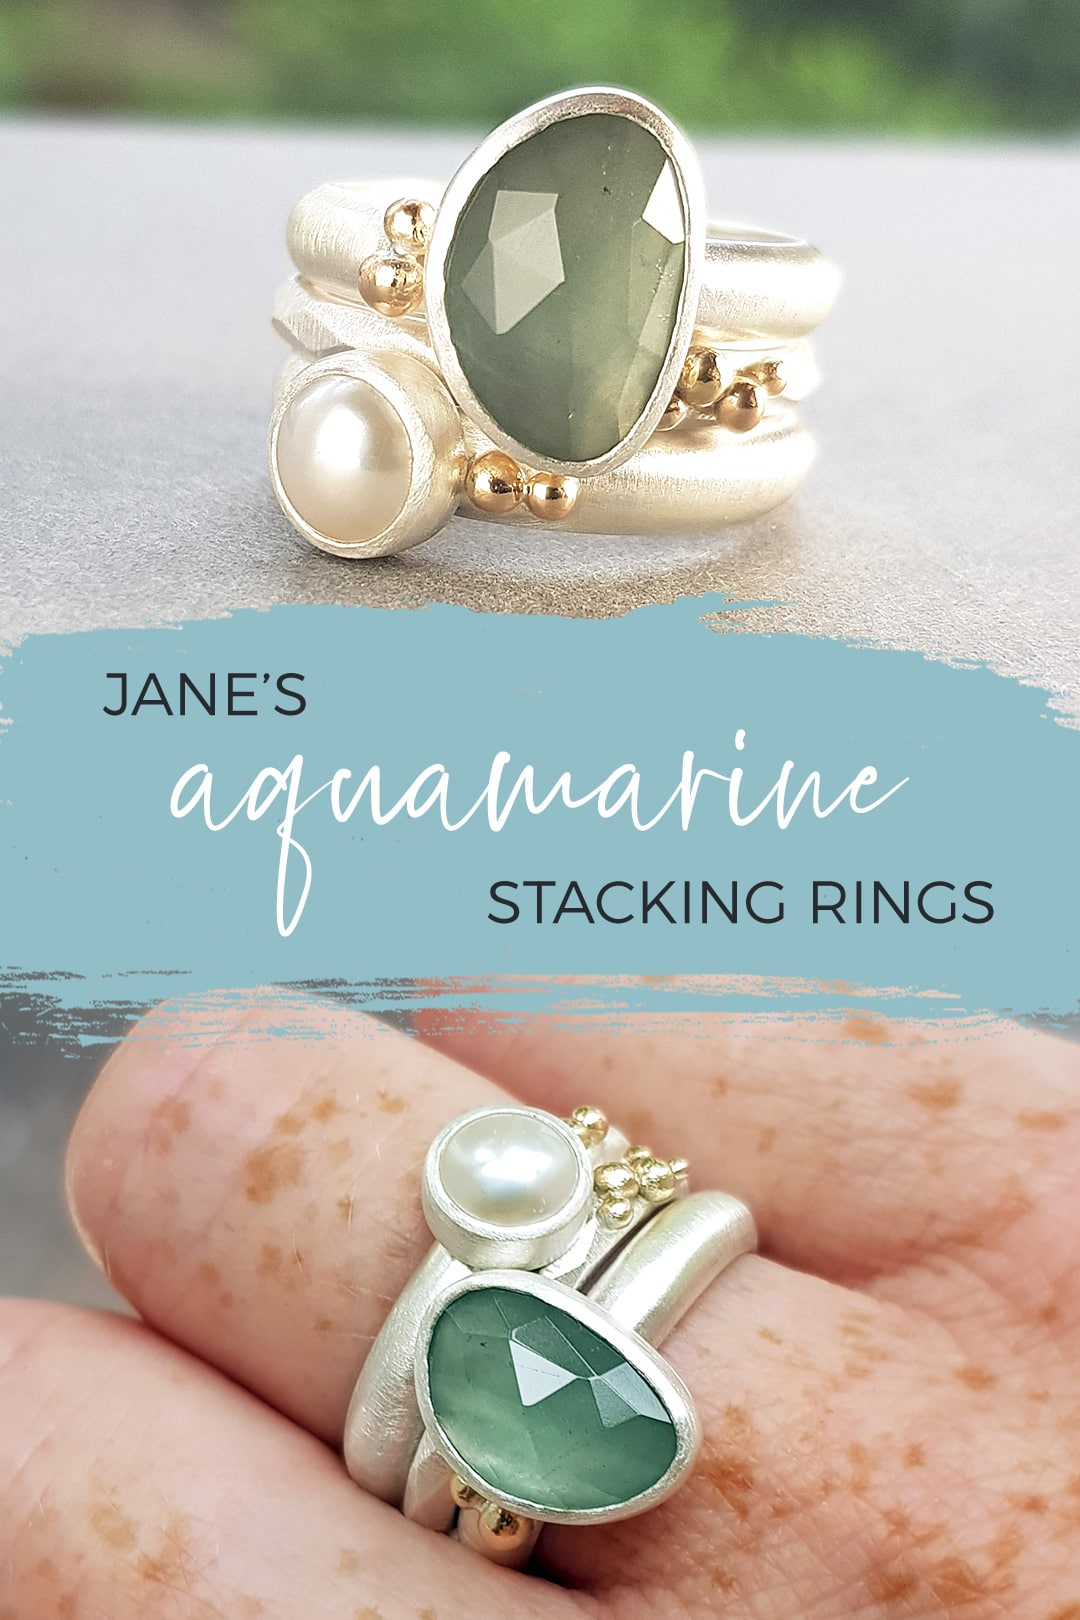 Jane's aquamarine, silver and gold stacking ring commission